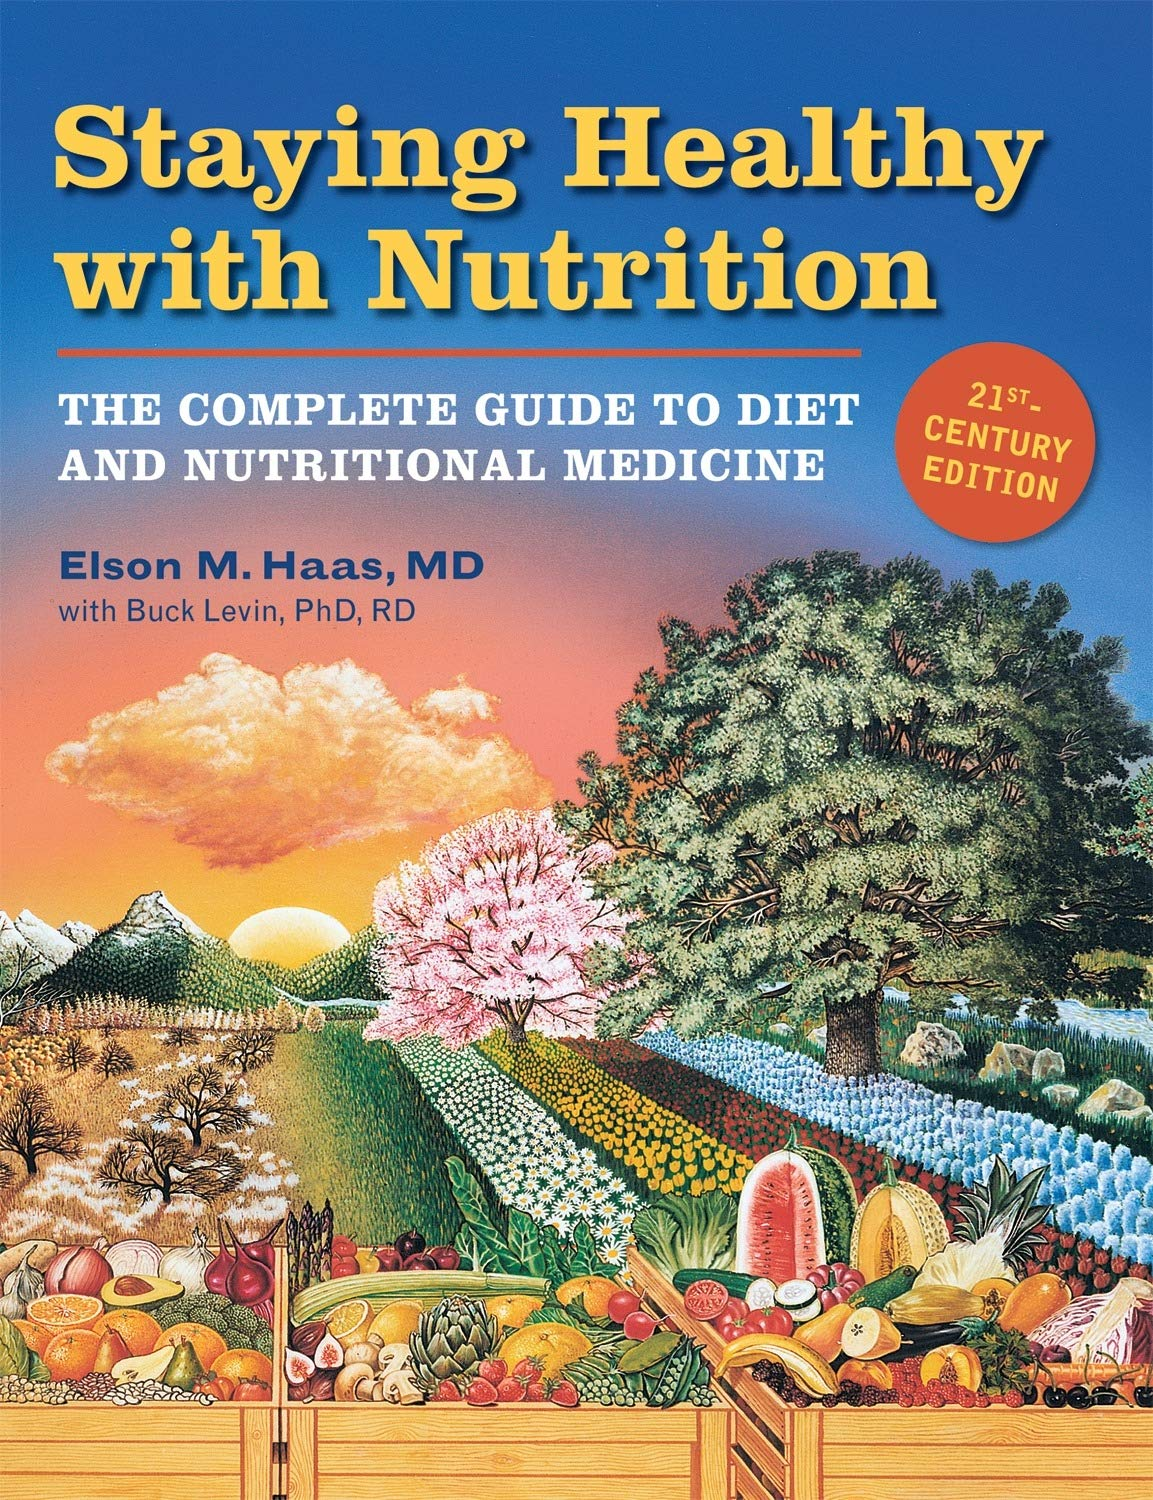 Staying Healthy with Nutrition, rev: The Complete Guide to Diet and Nutritional Medicine 1